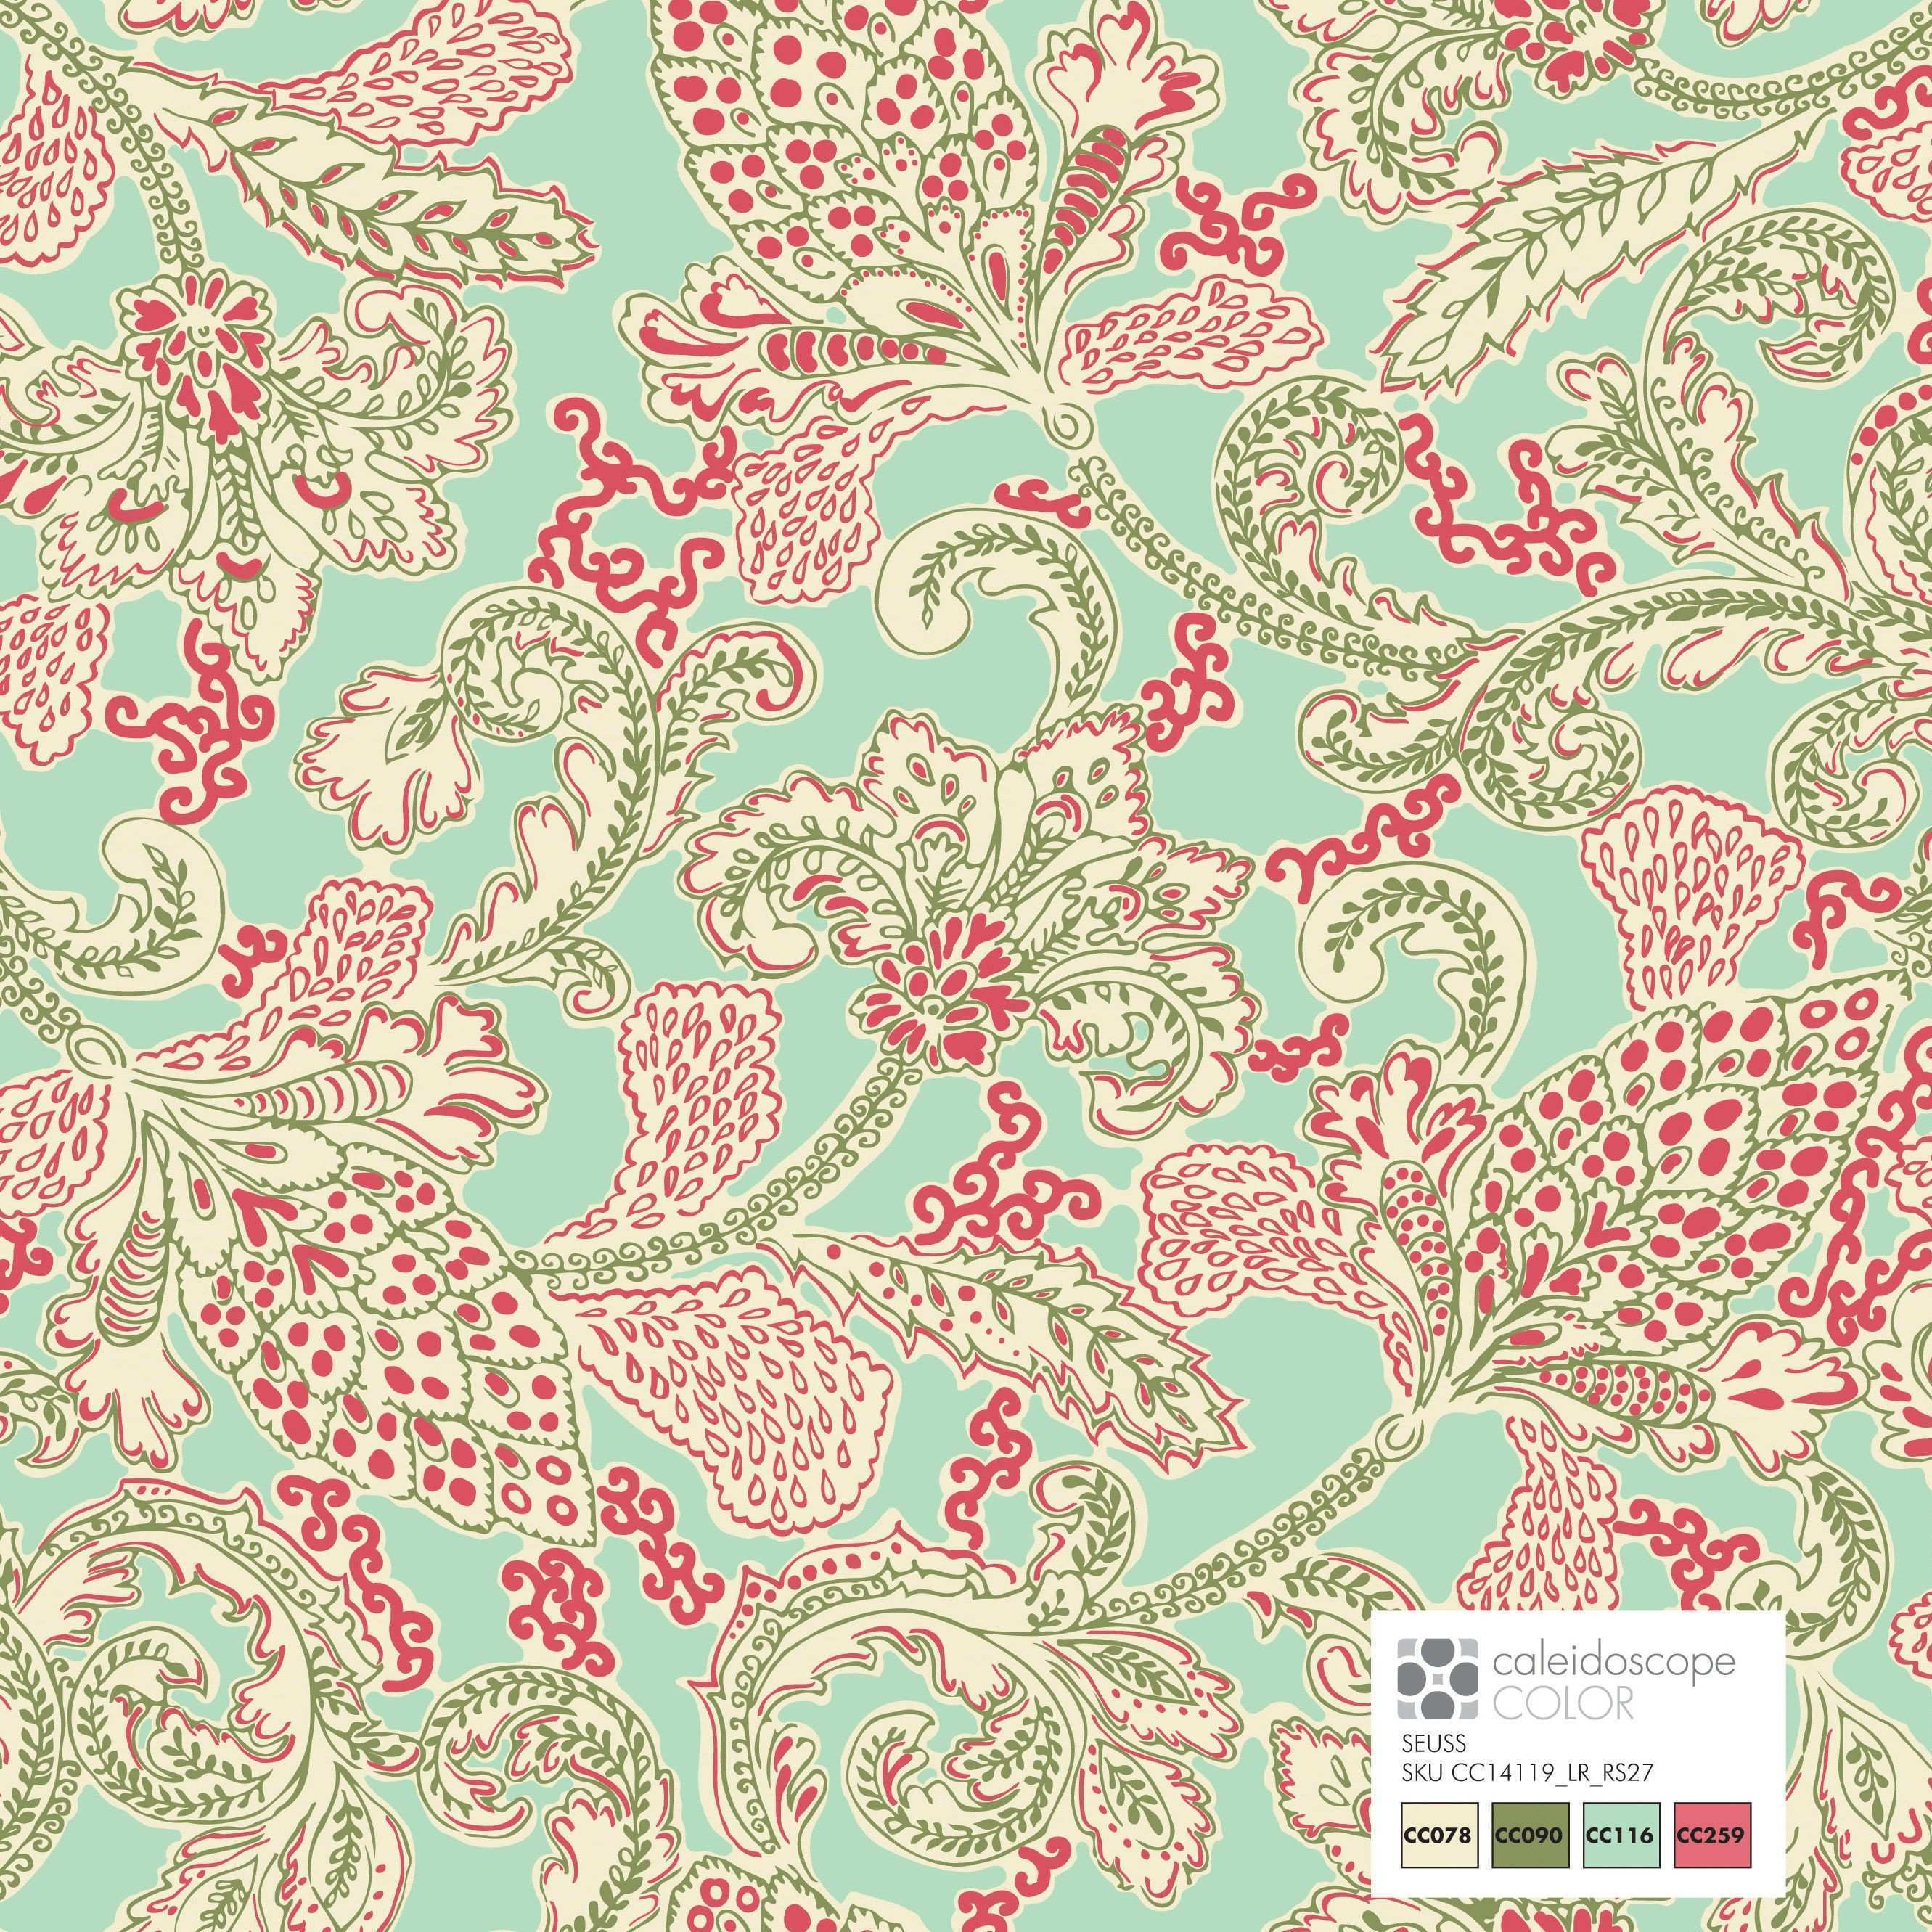 SUESS design digital artwork rose available in cotton sateen